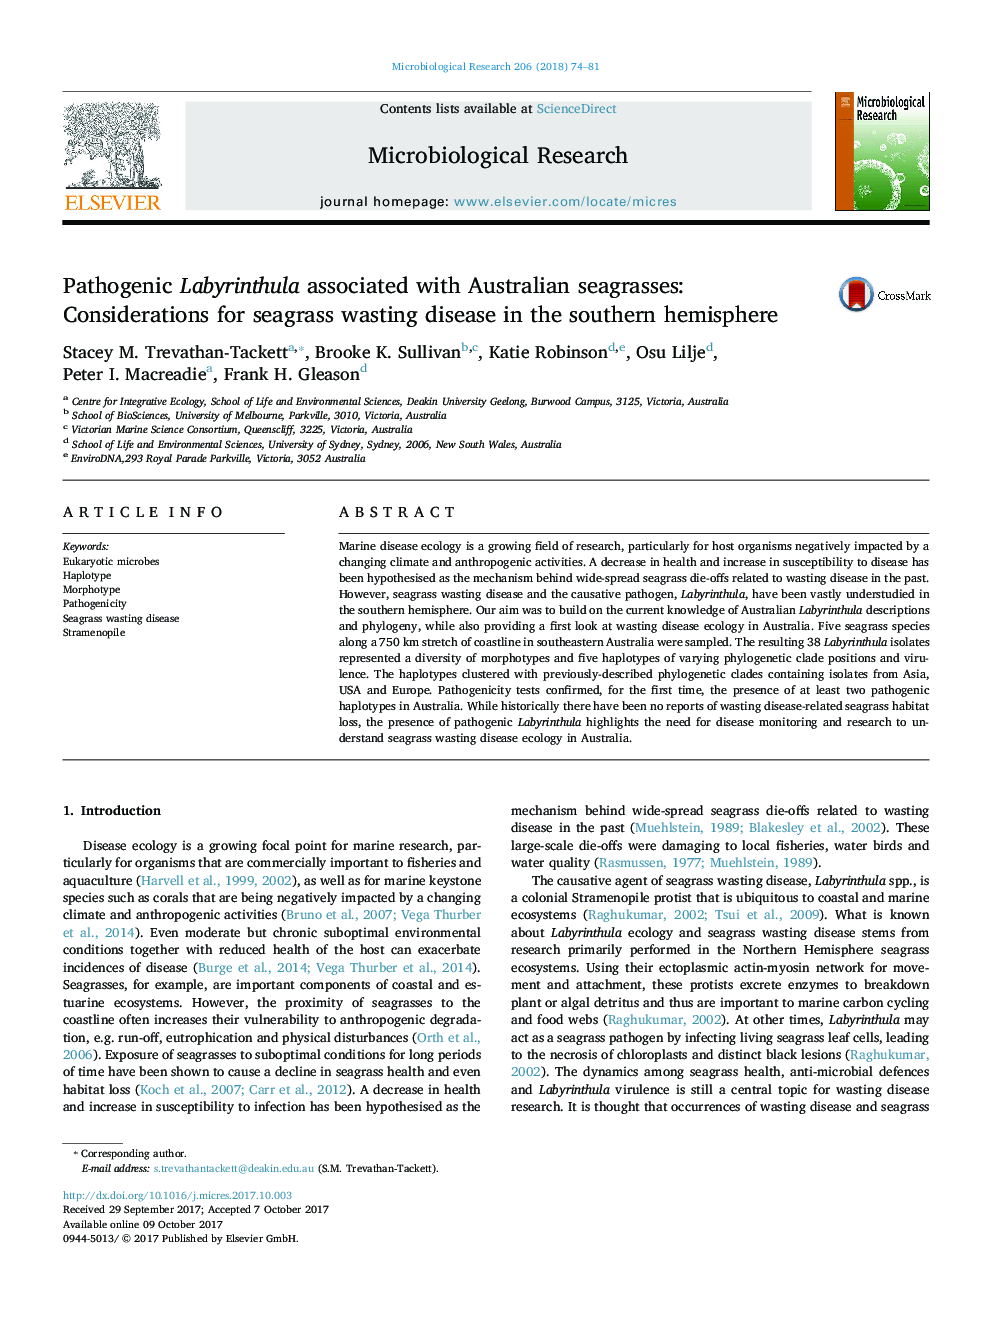 Pathogenic Labyrinthula associated with Australian seagrasses: Considerations for seagrass wasting disease in the southern hemisphere